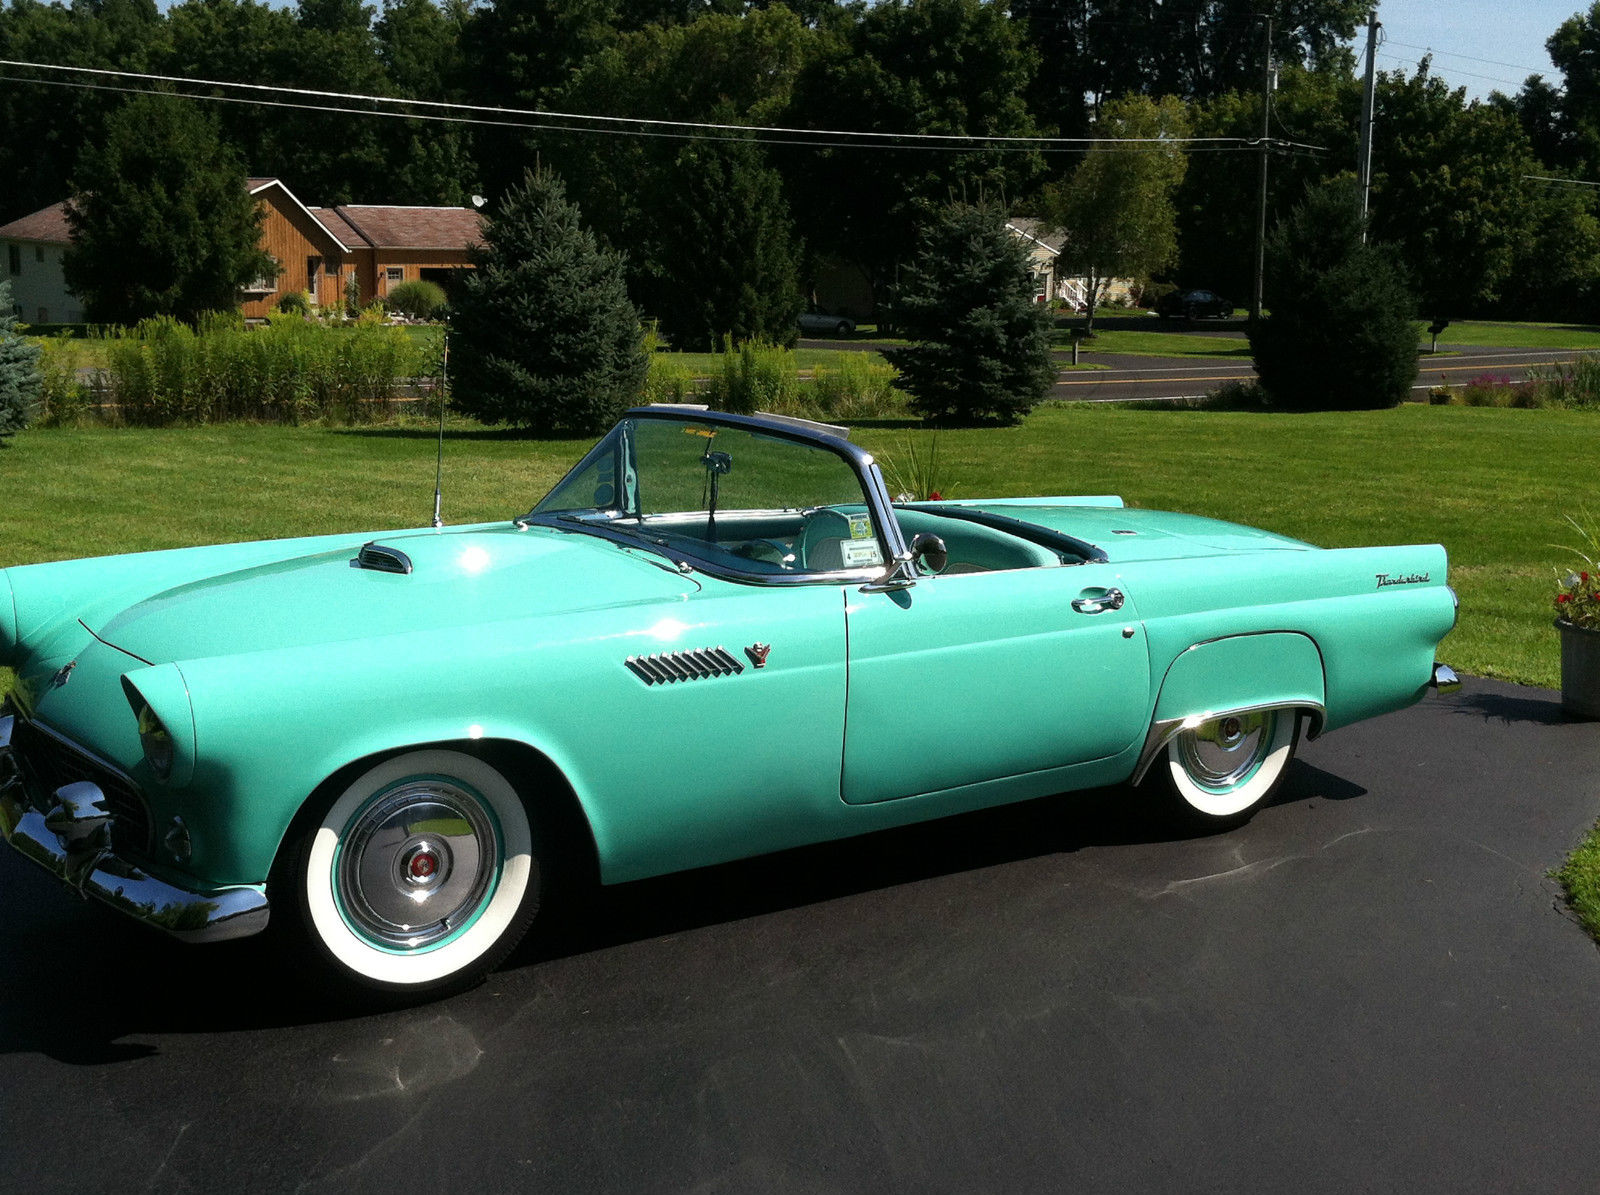 1955 ford thunderbird v8 numbers match hot rod cruiser tbird. Black Bedroom Furniture Sets. Home Design Ideas